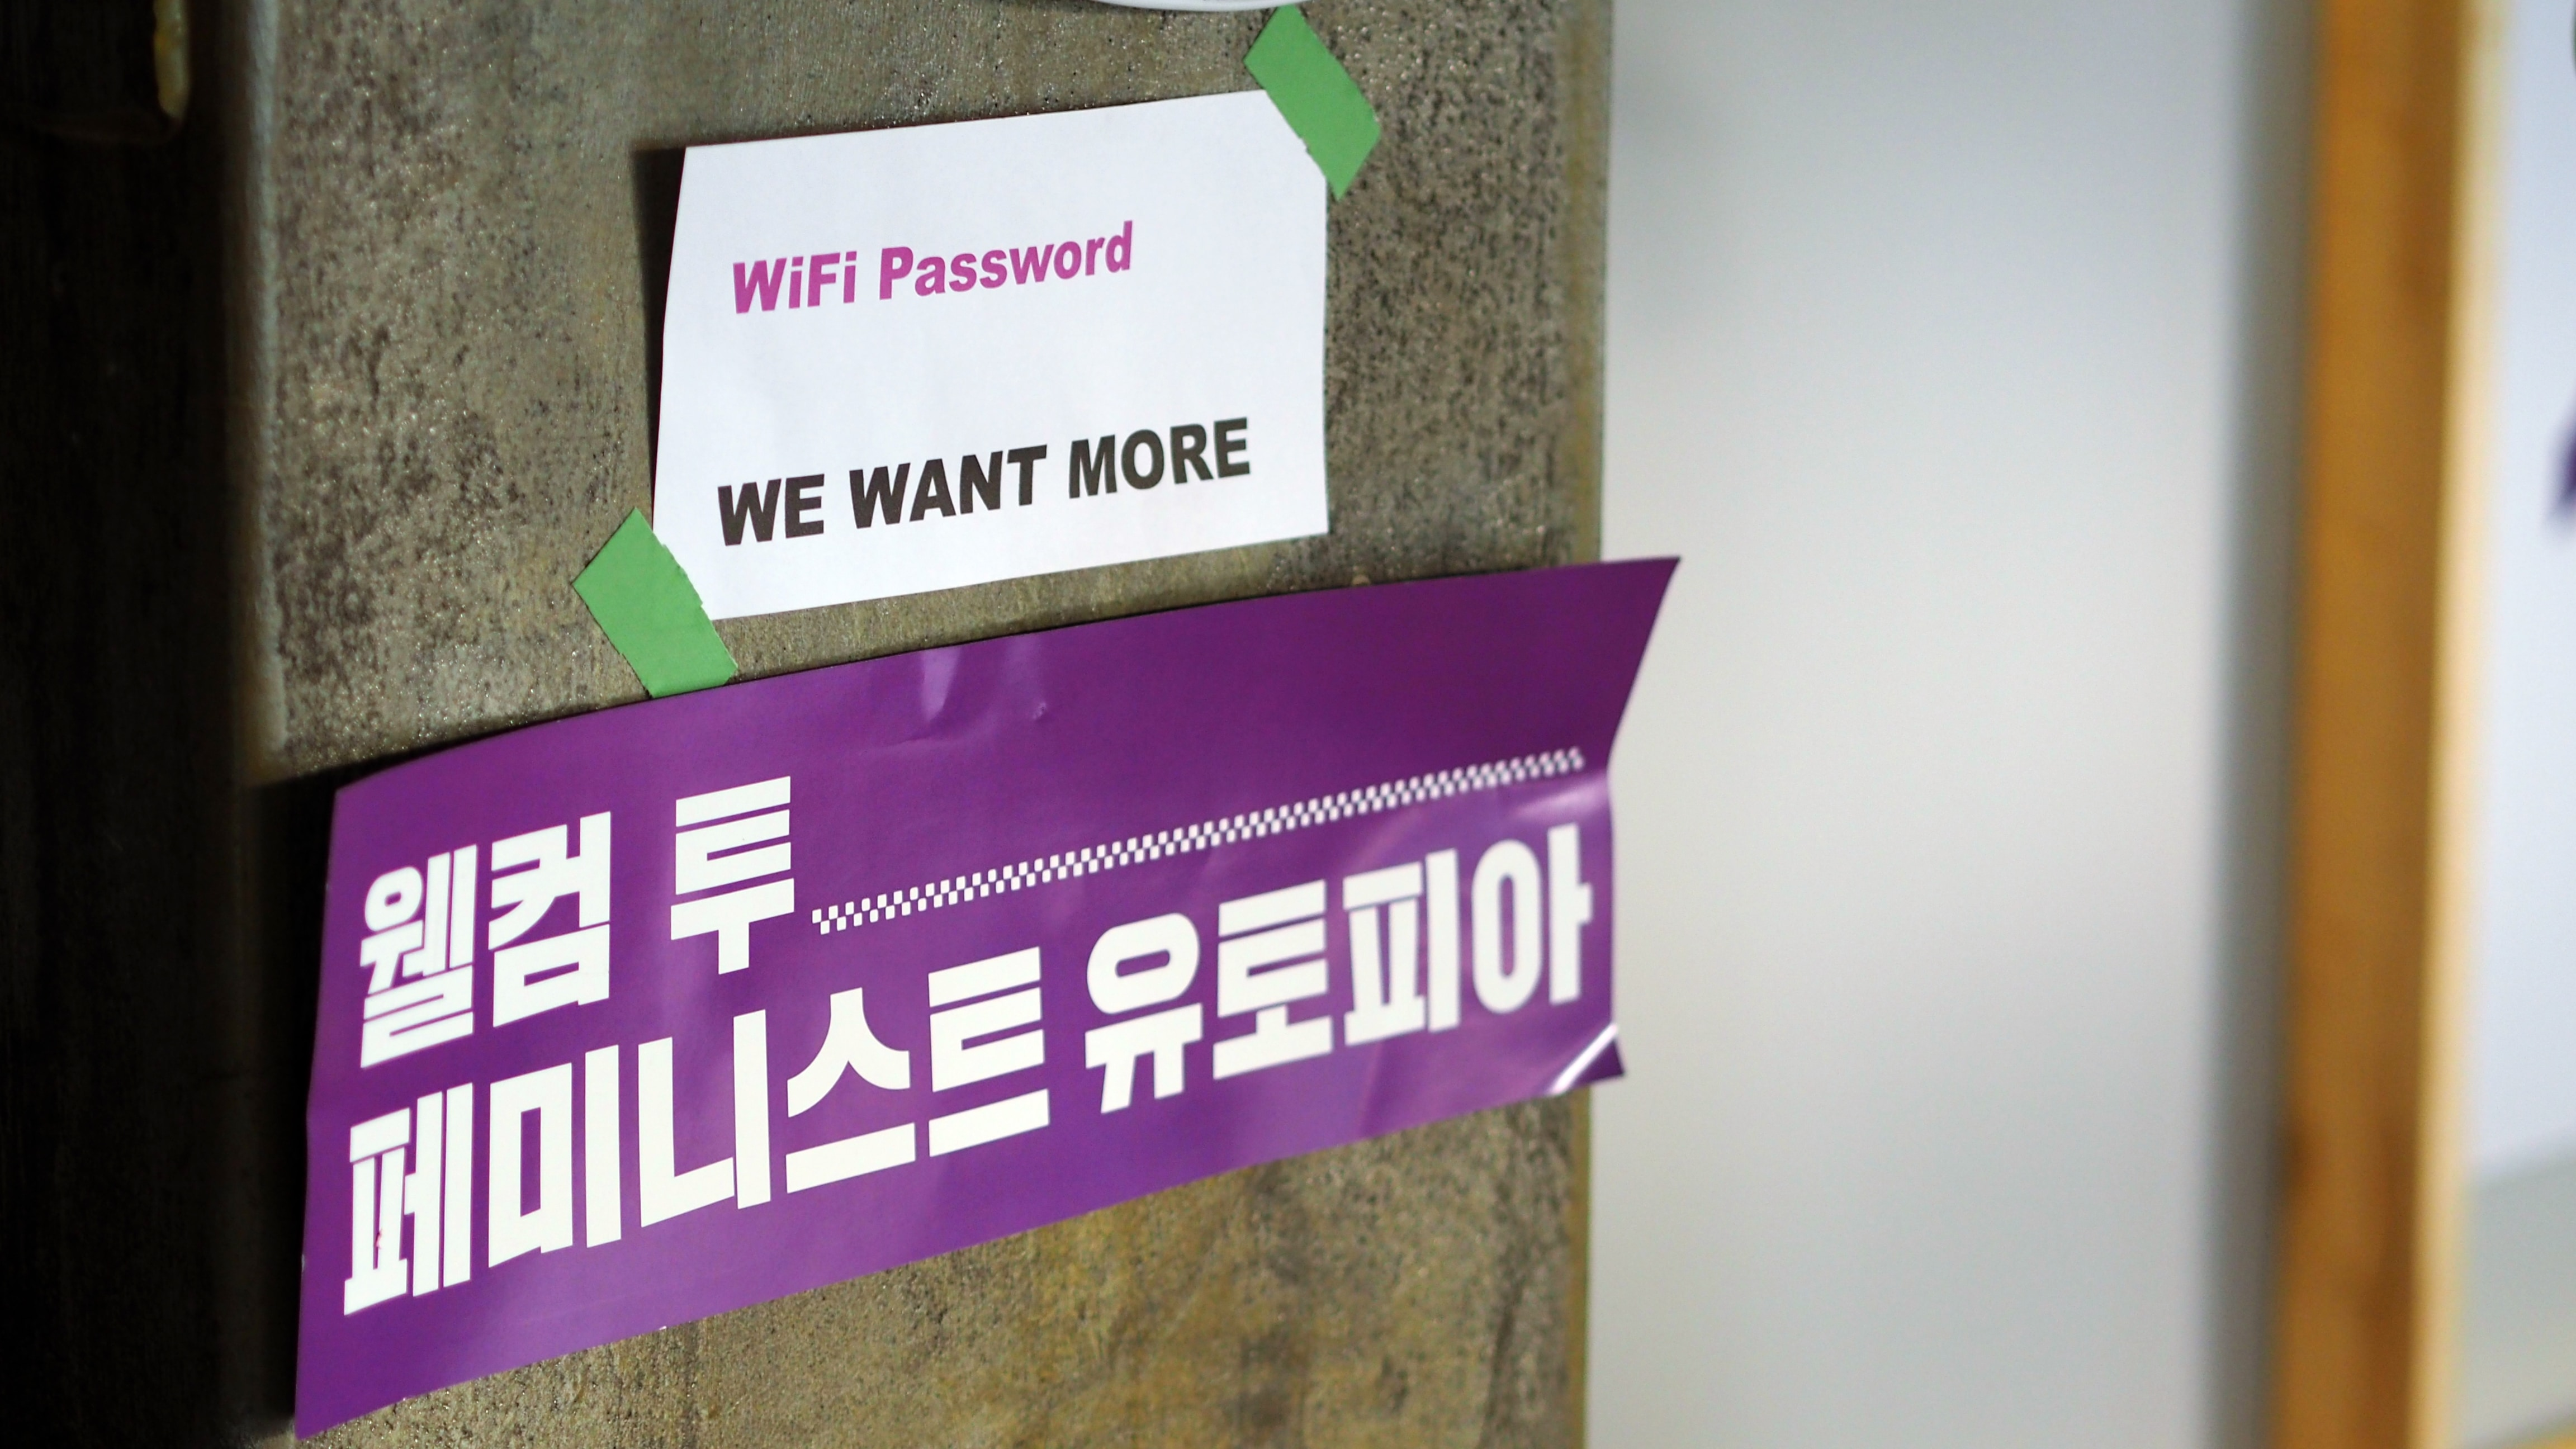 coworking_space_WiFi_internet